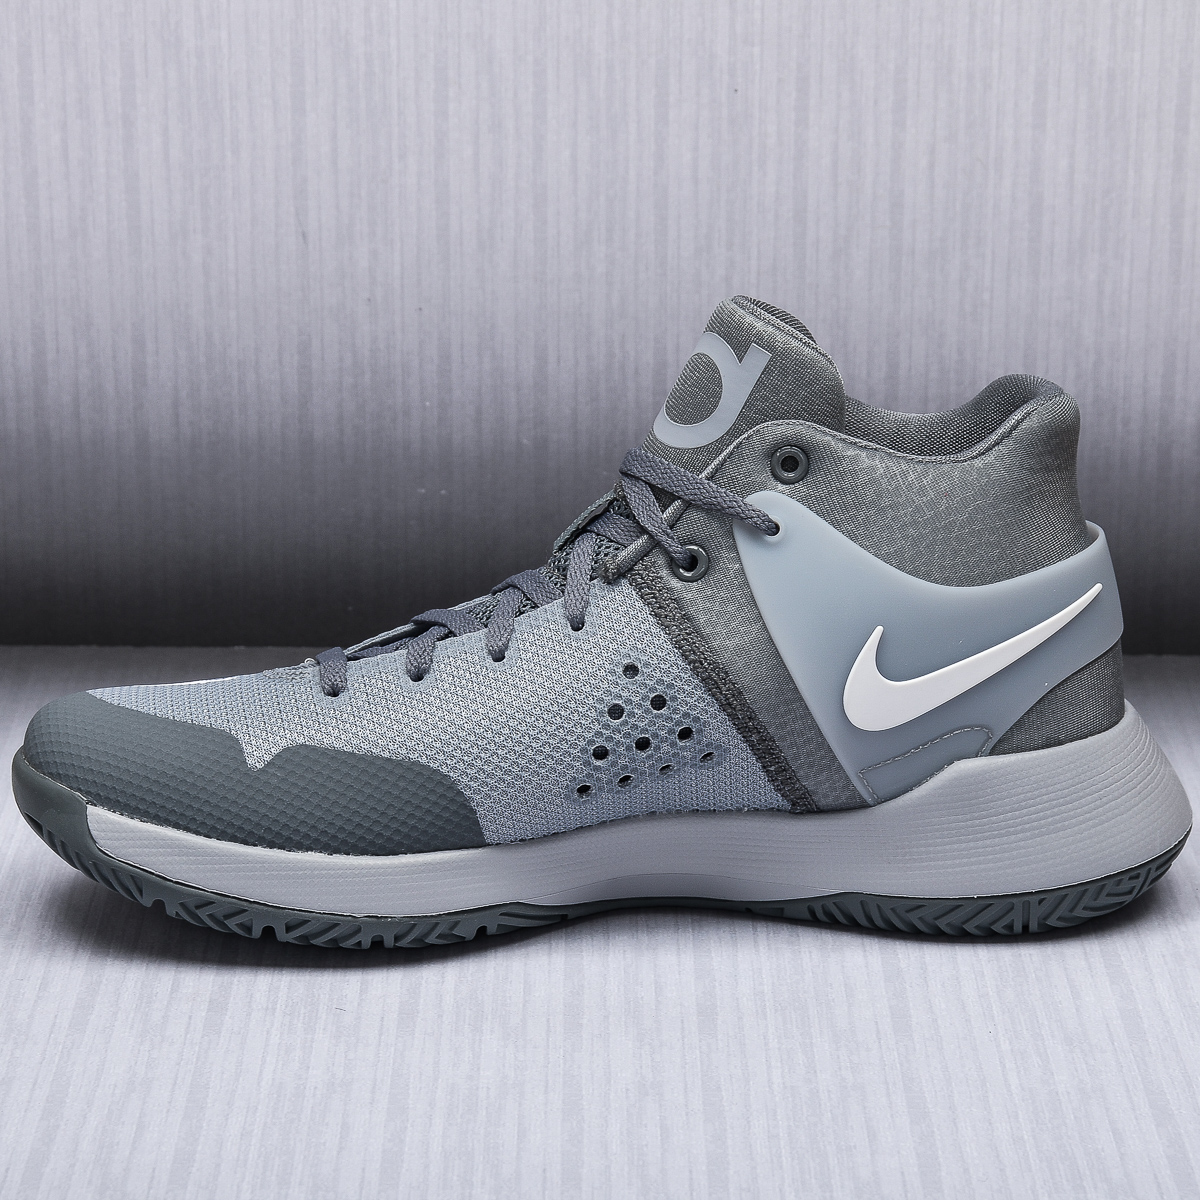 low priced d9dbe 4c10d Basketball Shoes Kd Iv Id